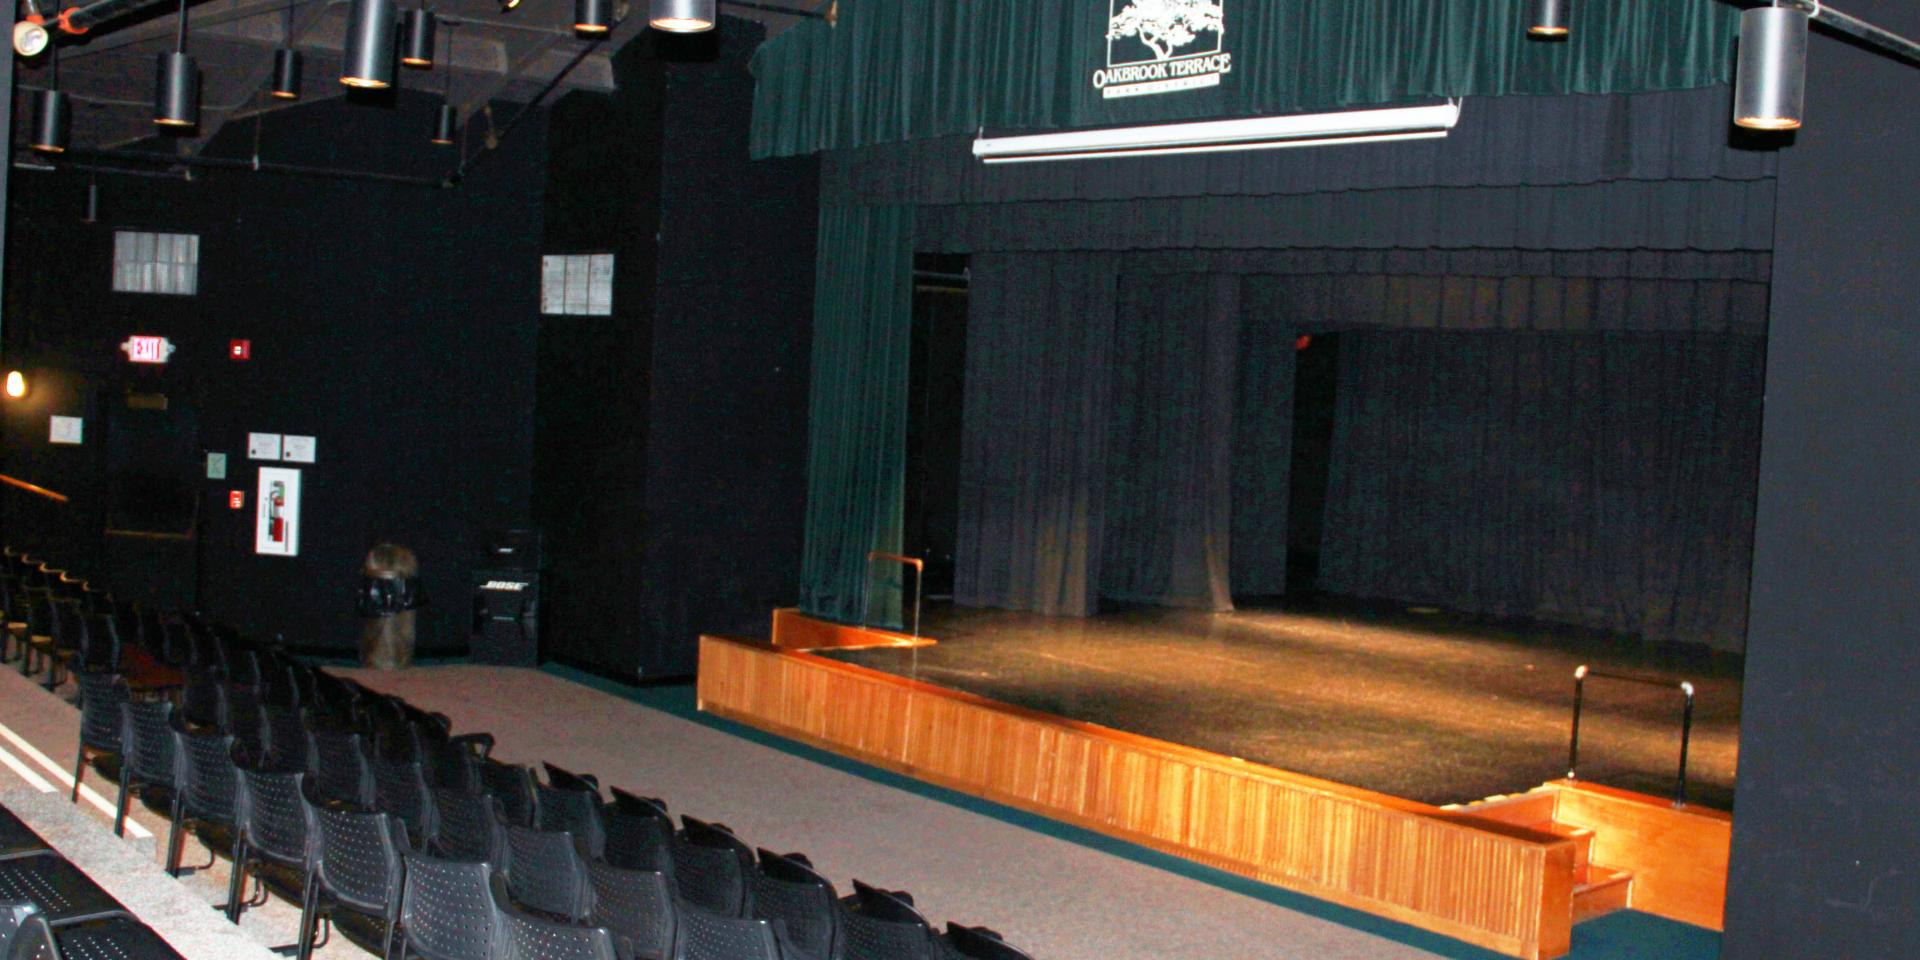 Mario Parente Theater